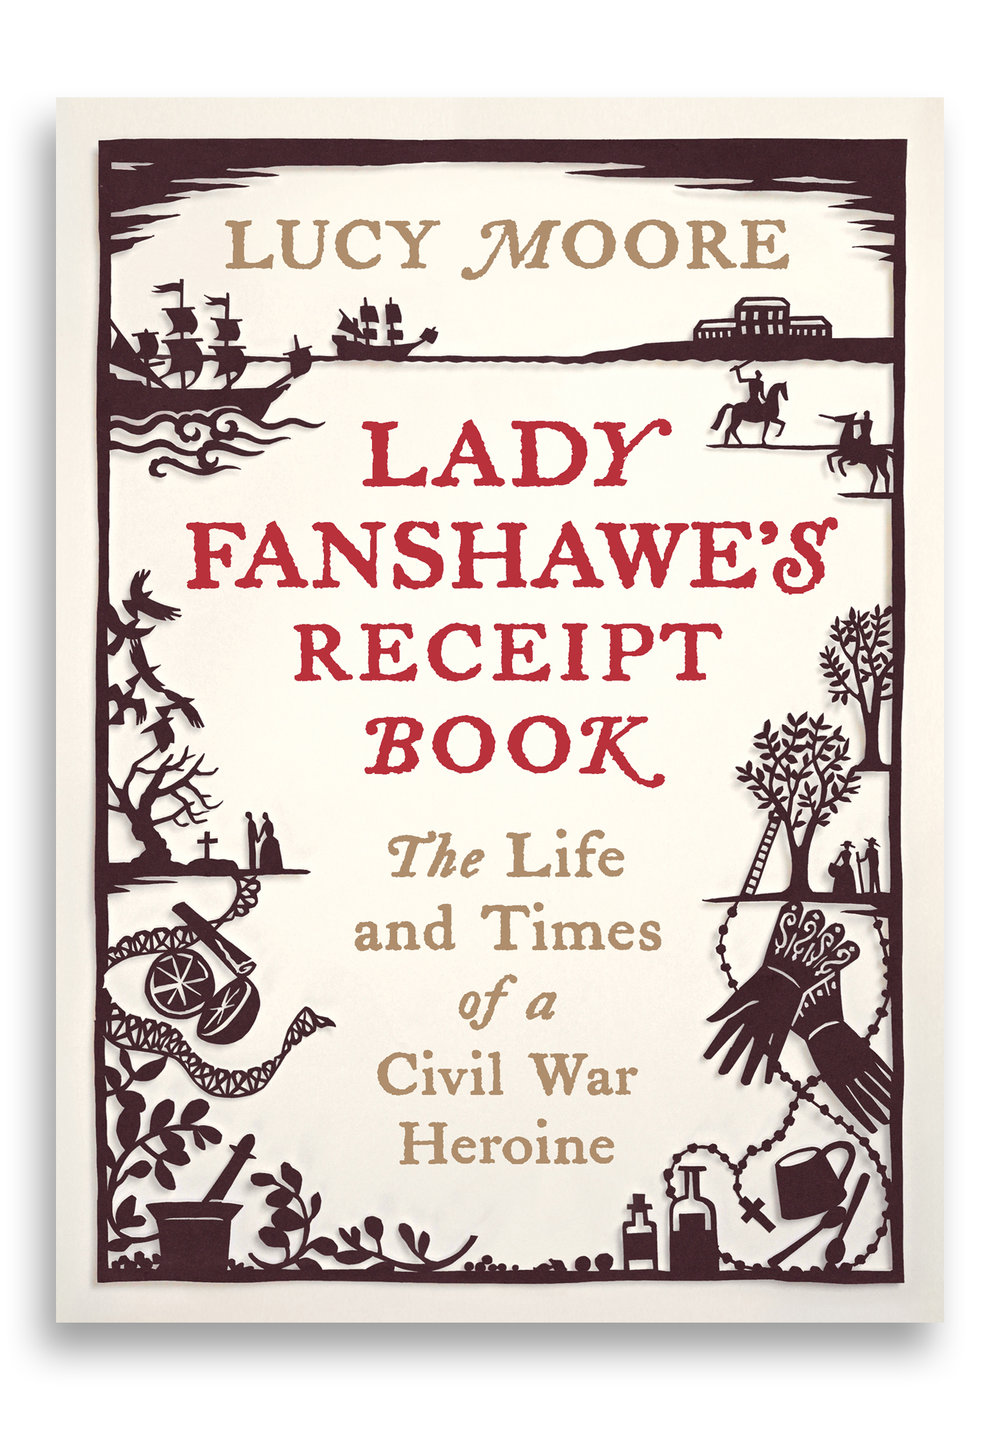 Lady Fanshawe's Receipt Book.jpg